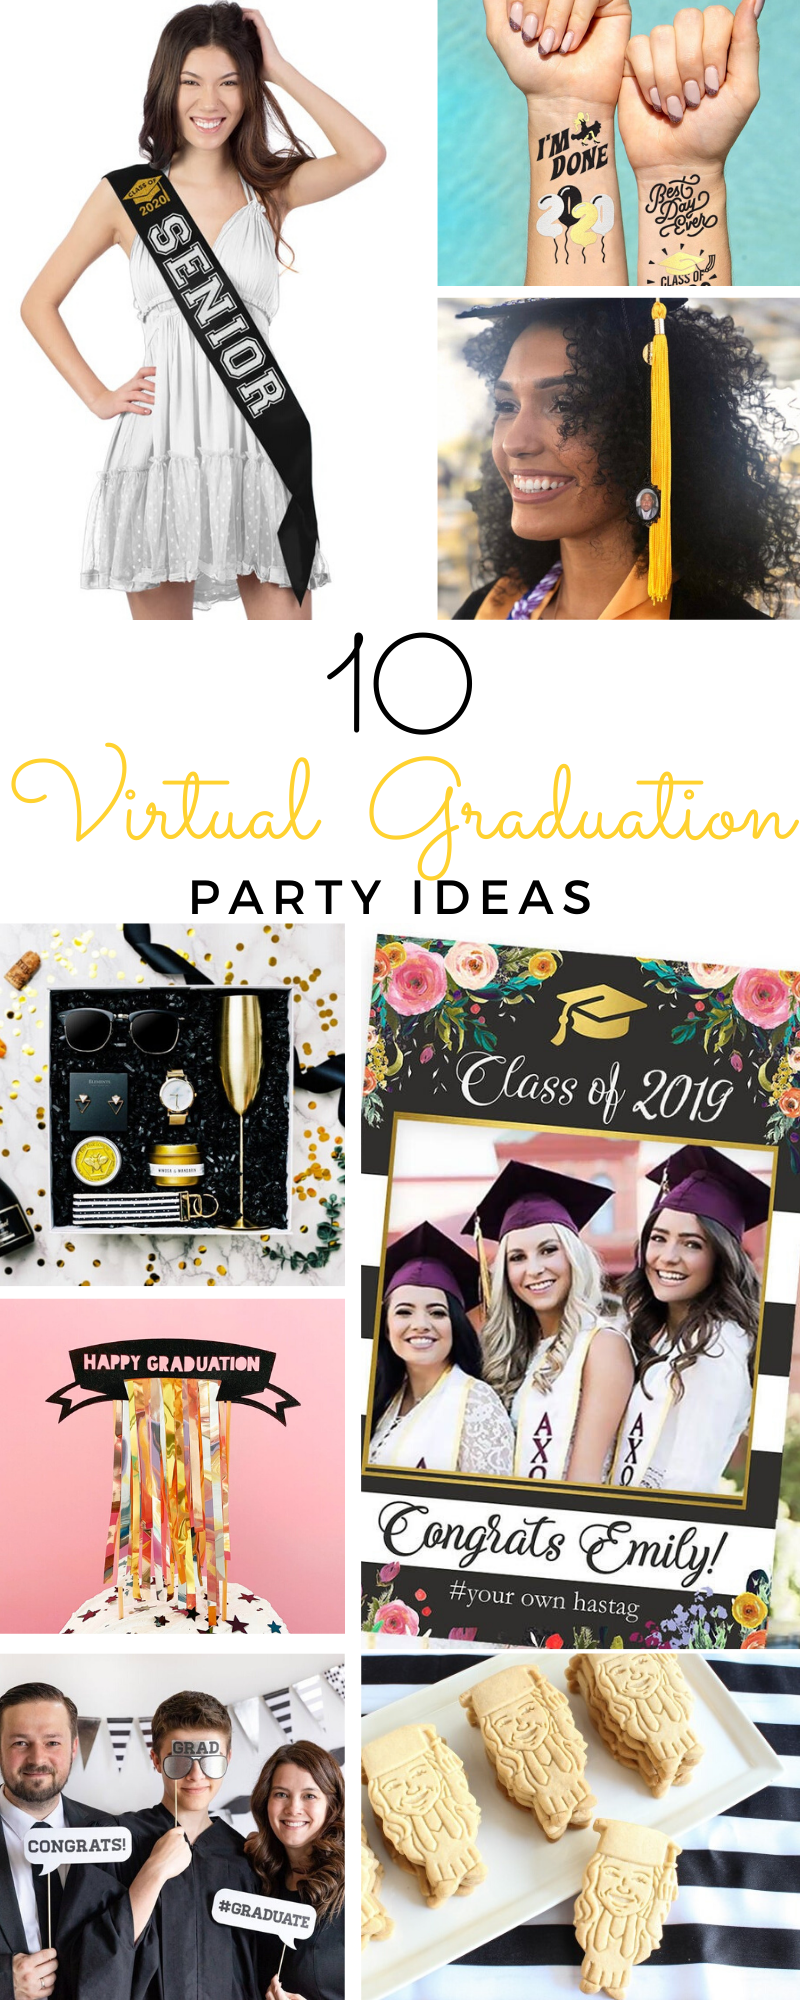 Virtual Graduation Party Ideas